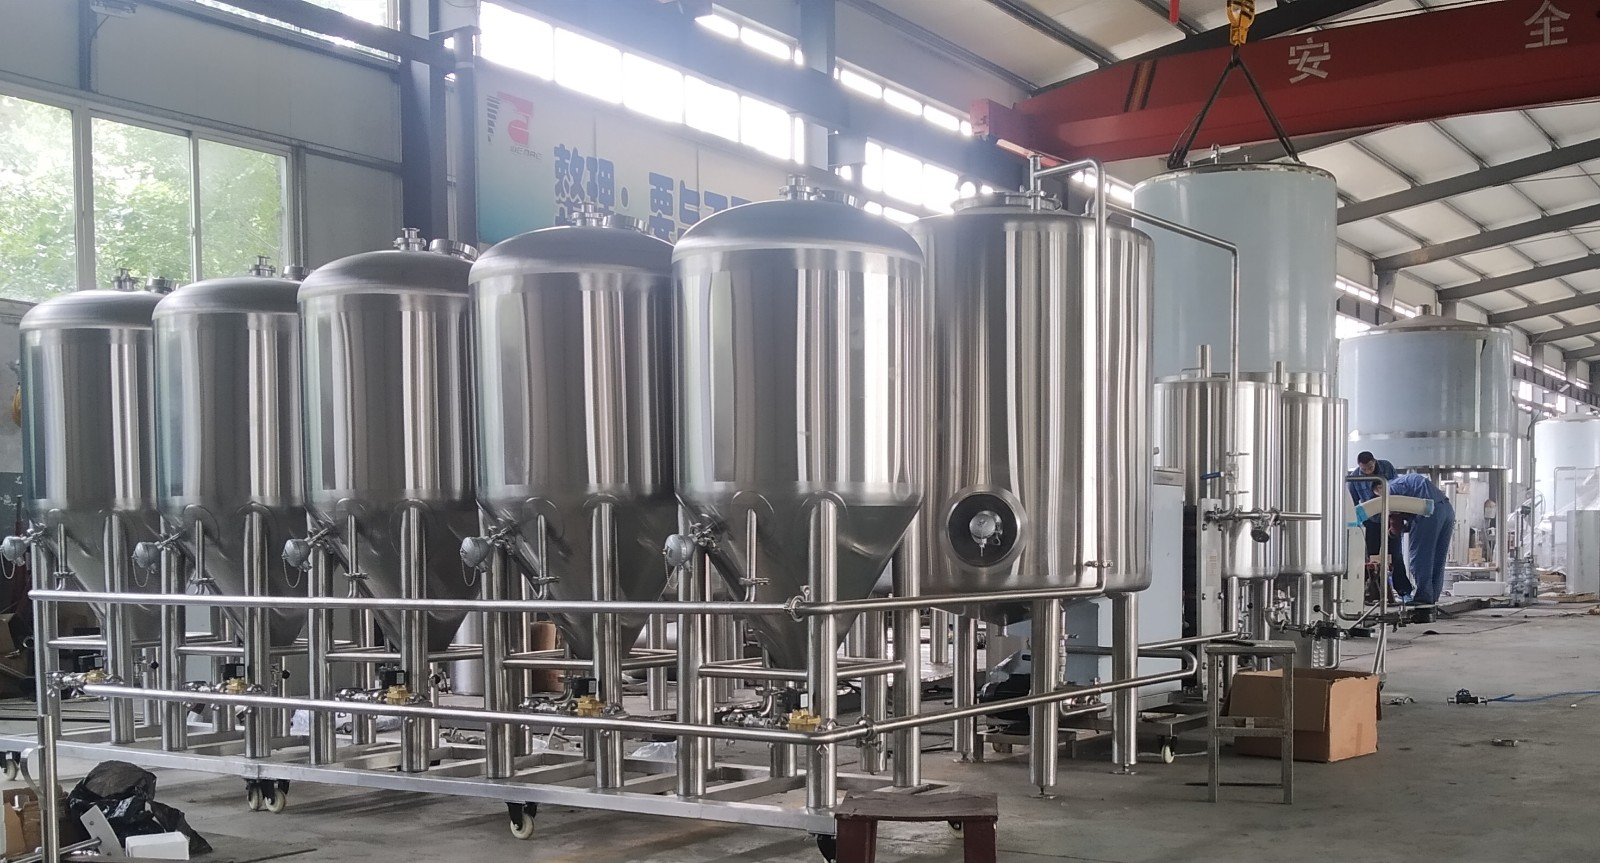 Pakistan complete small beer brewery system of Stainless steel from China factory 2020 W1